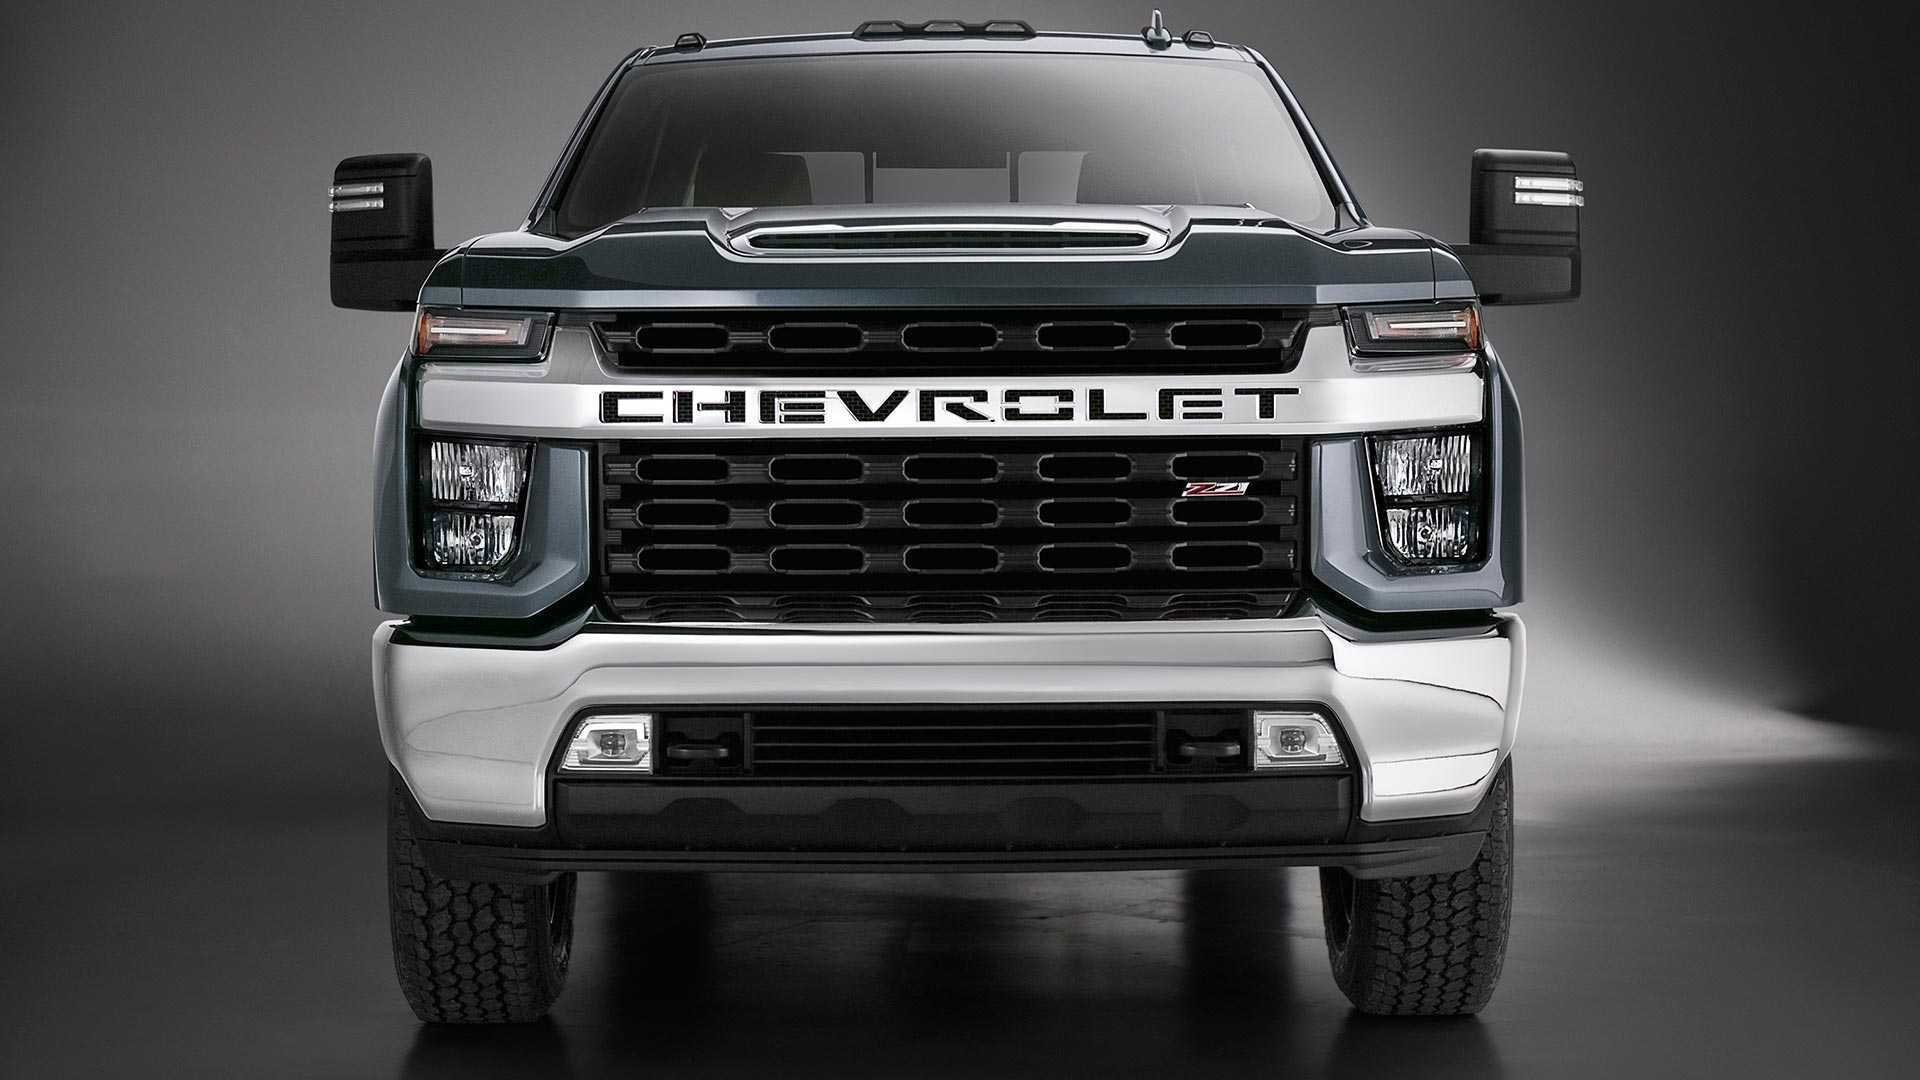 New Chevy Truck >> 2020 Chevy Silverado Hd Unveiled Getting New V8 And Gearbox